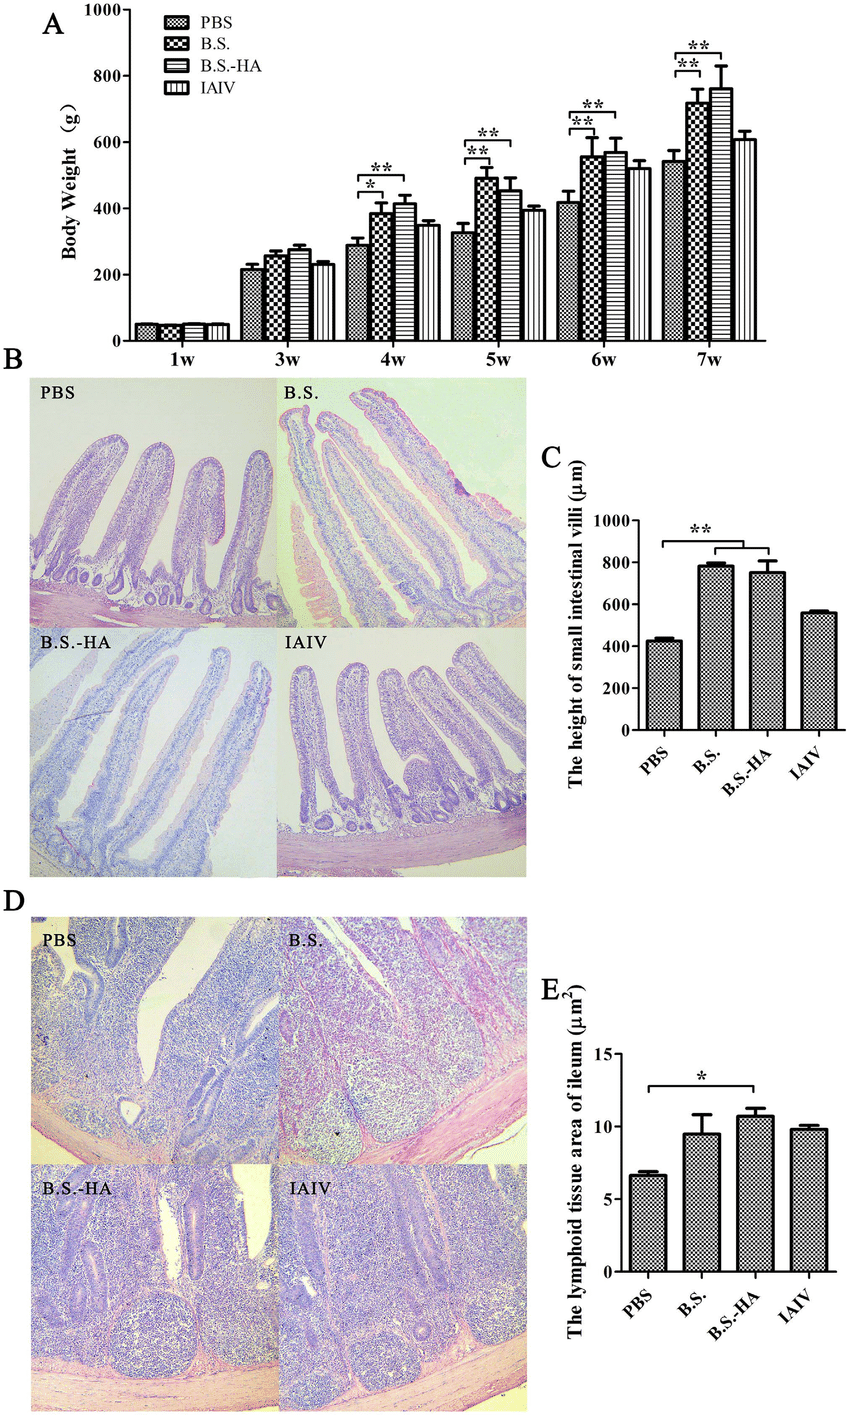 hight resolution of changes of body weight small intestinal villi height and lymphoid tissue area a